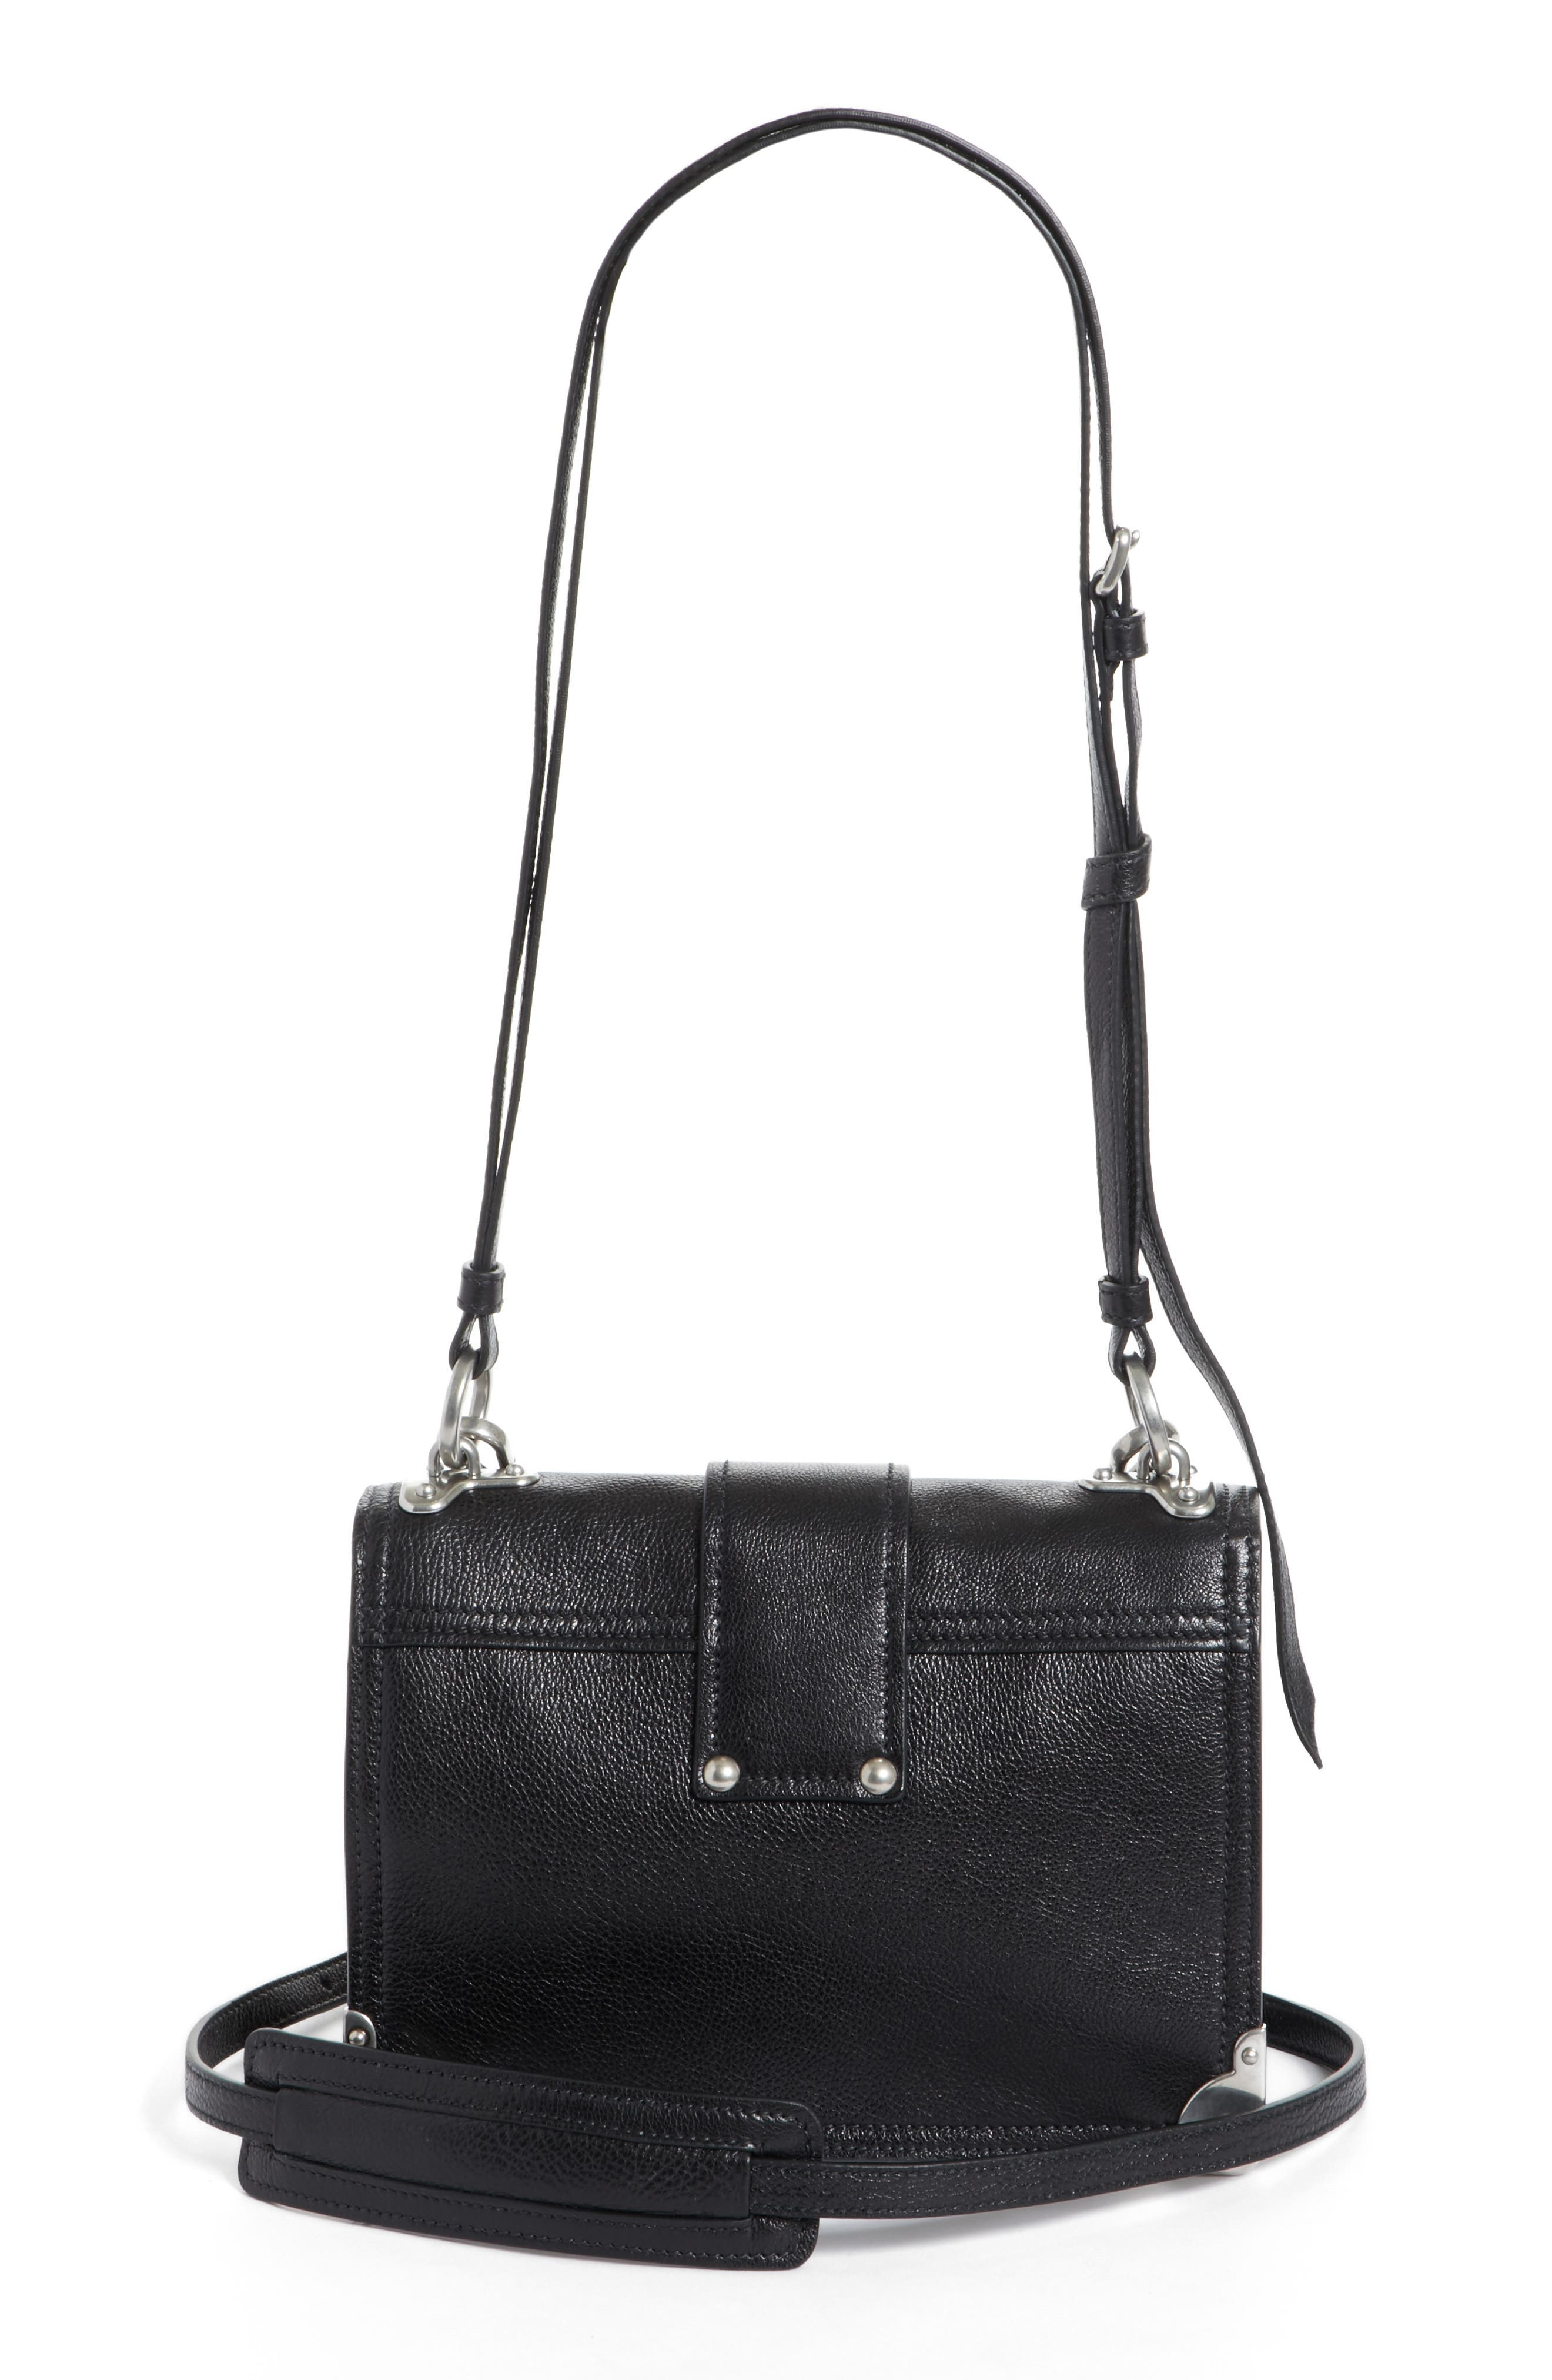 PRADA,                             Cahier Glace Calfskin Convertible Shoulder Bag,                             Alternate thumbnail 3, color,                             001